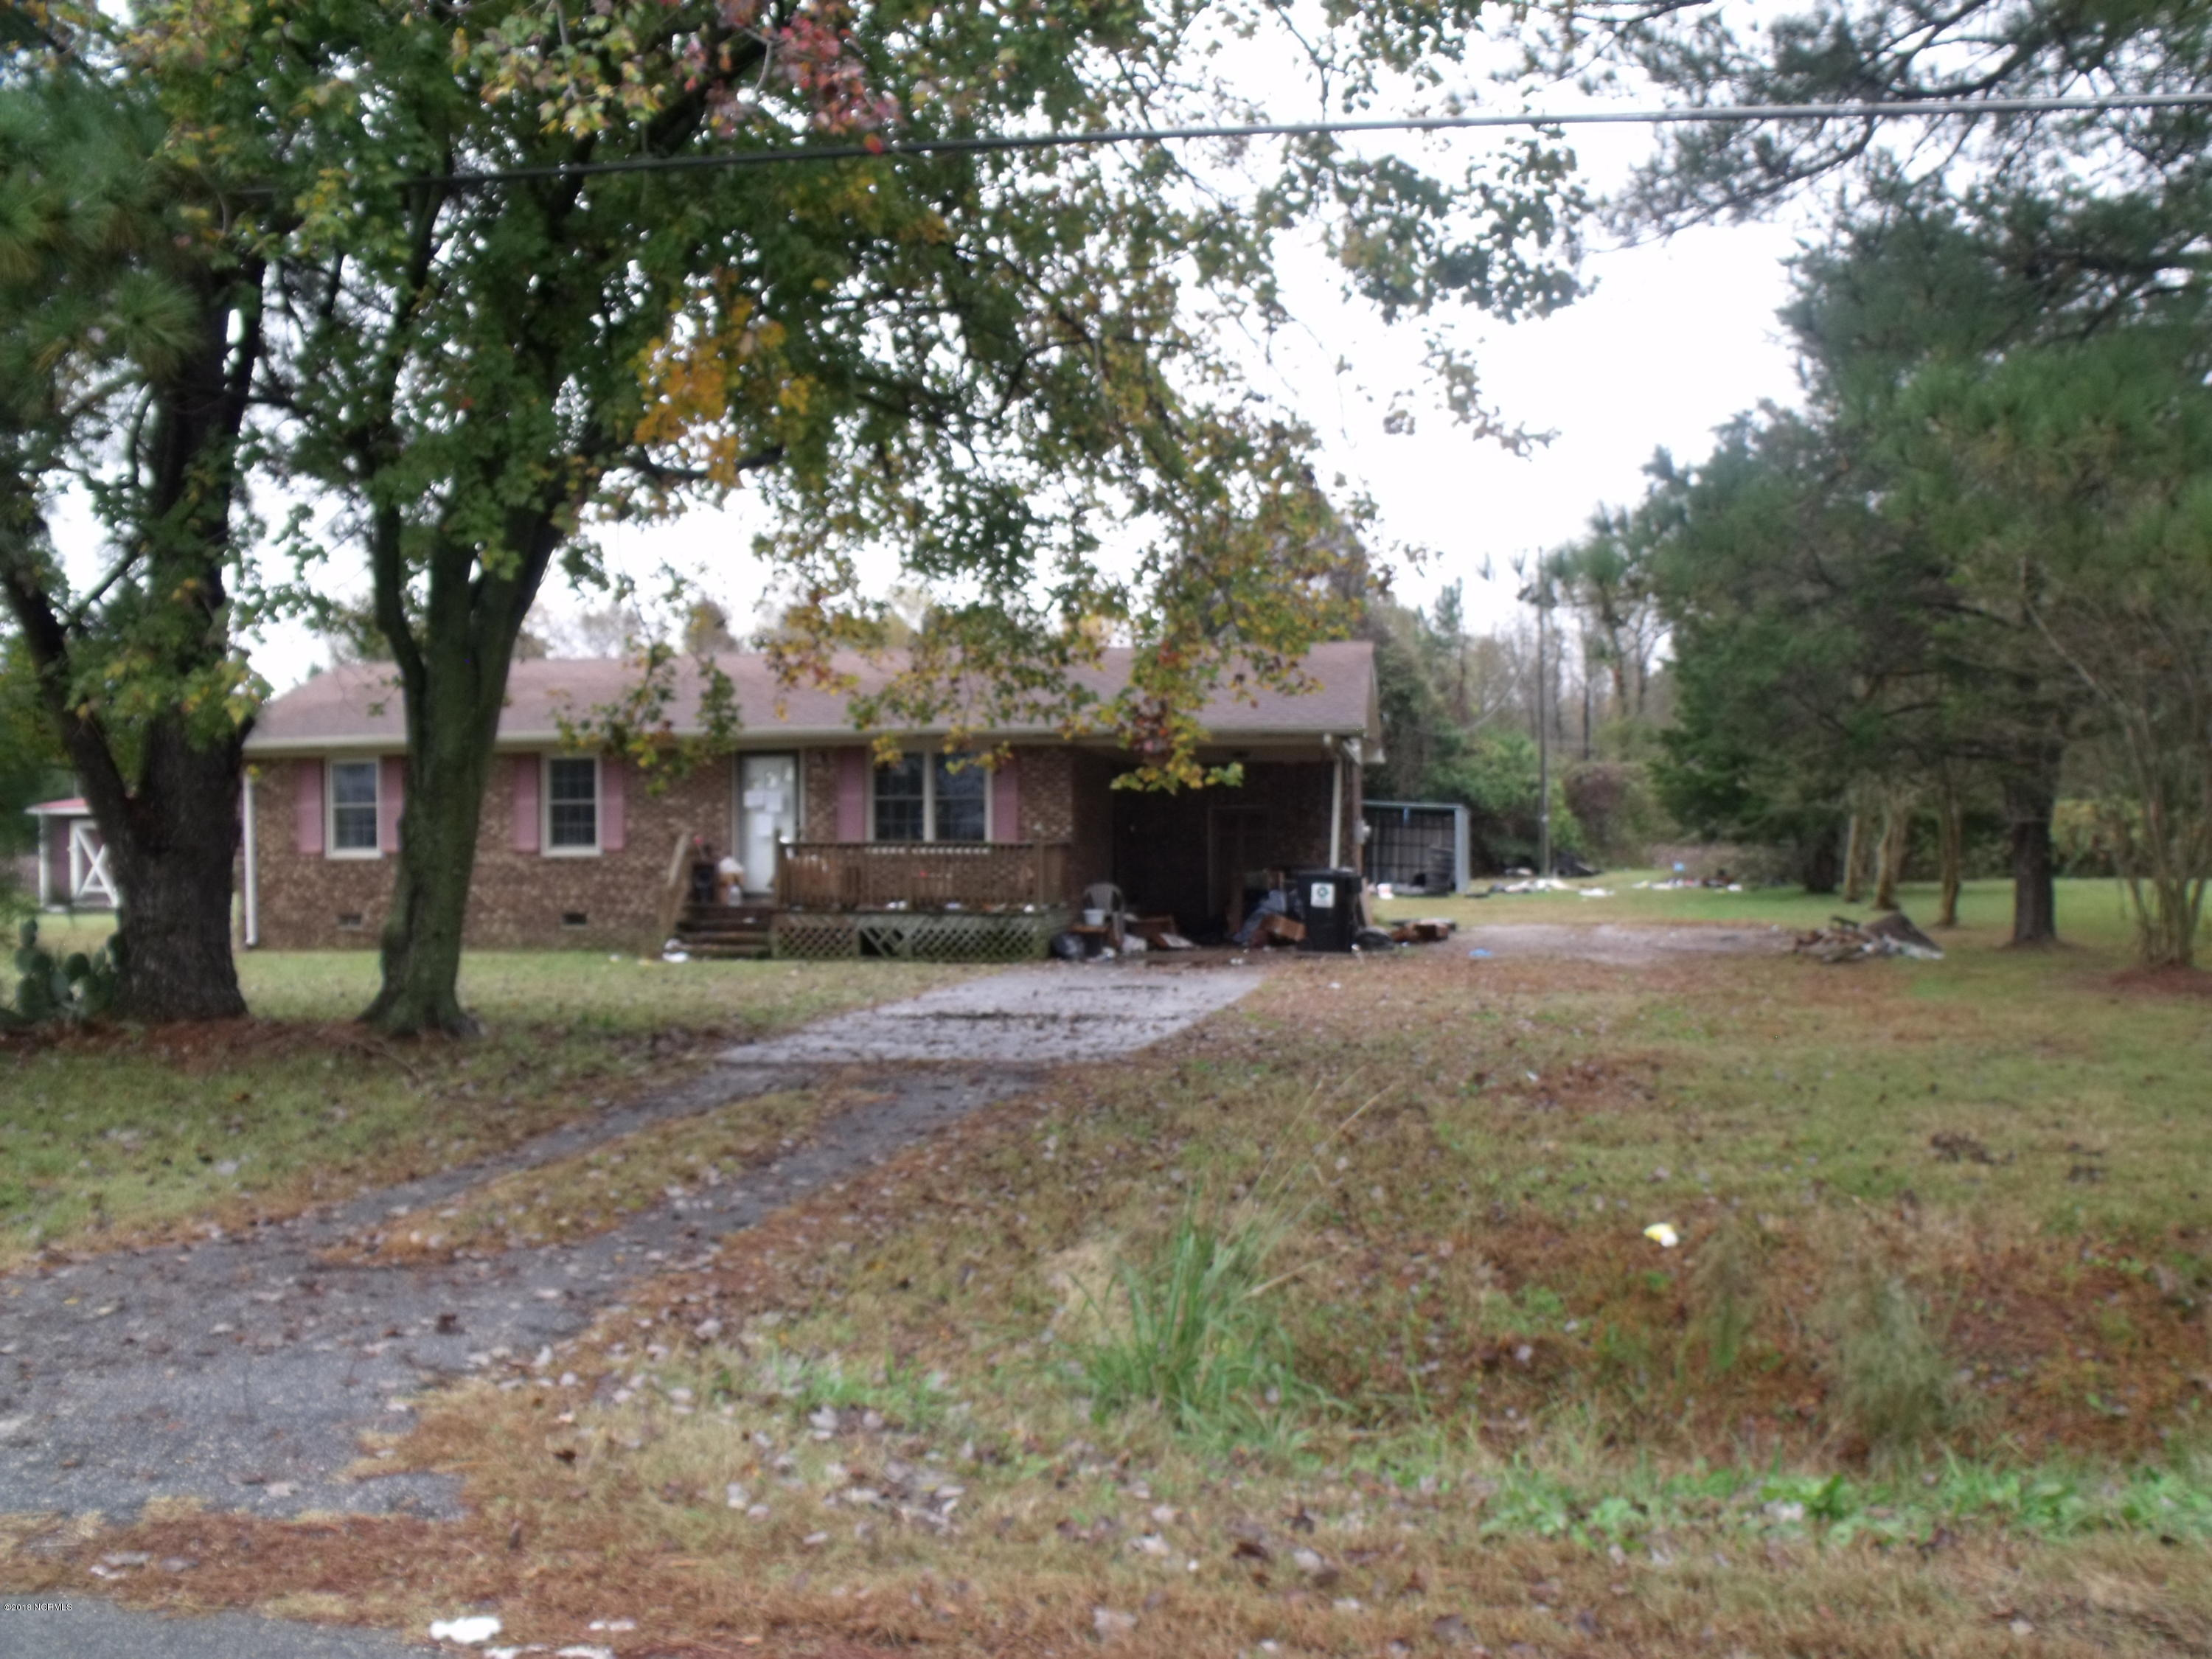 13959 Nc 125, Oak City, North Carolina, 3 Bedrooms Bedrooms, 5 Rooms Rooms,1 BathroomBathrooms,Single family residence,For sale,Nc 125,100140385